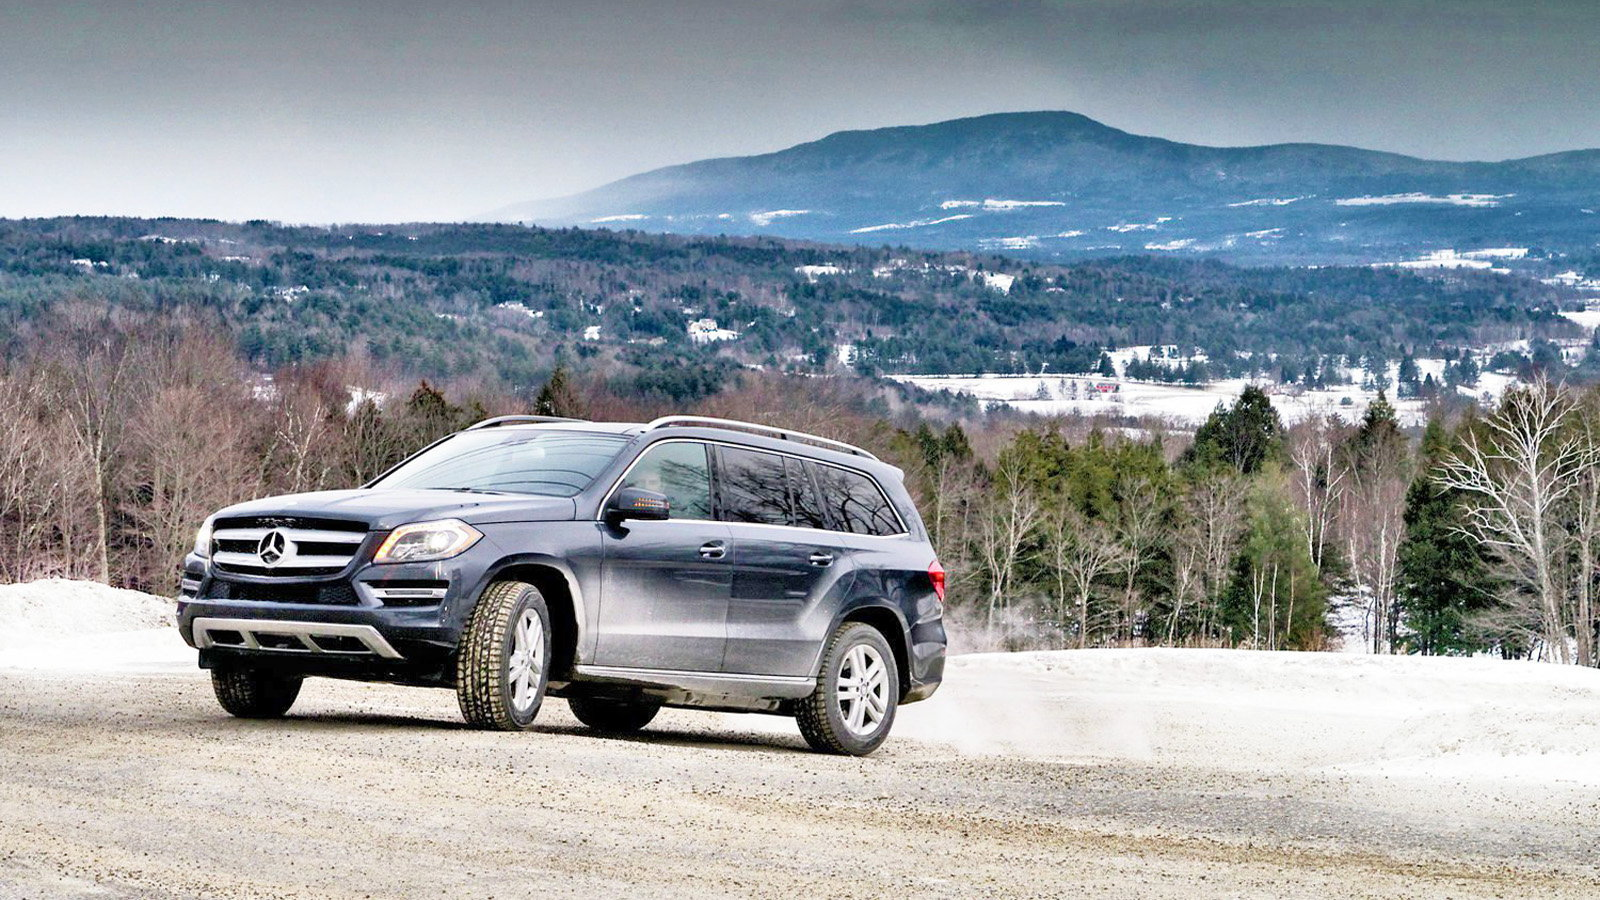 5 Things to Know About Winter Tires for Your Mercedes-Benz